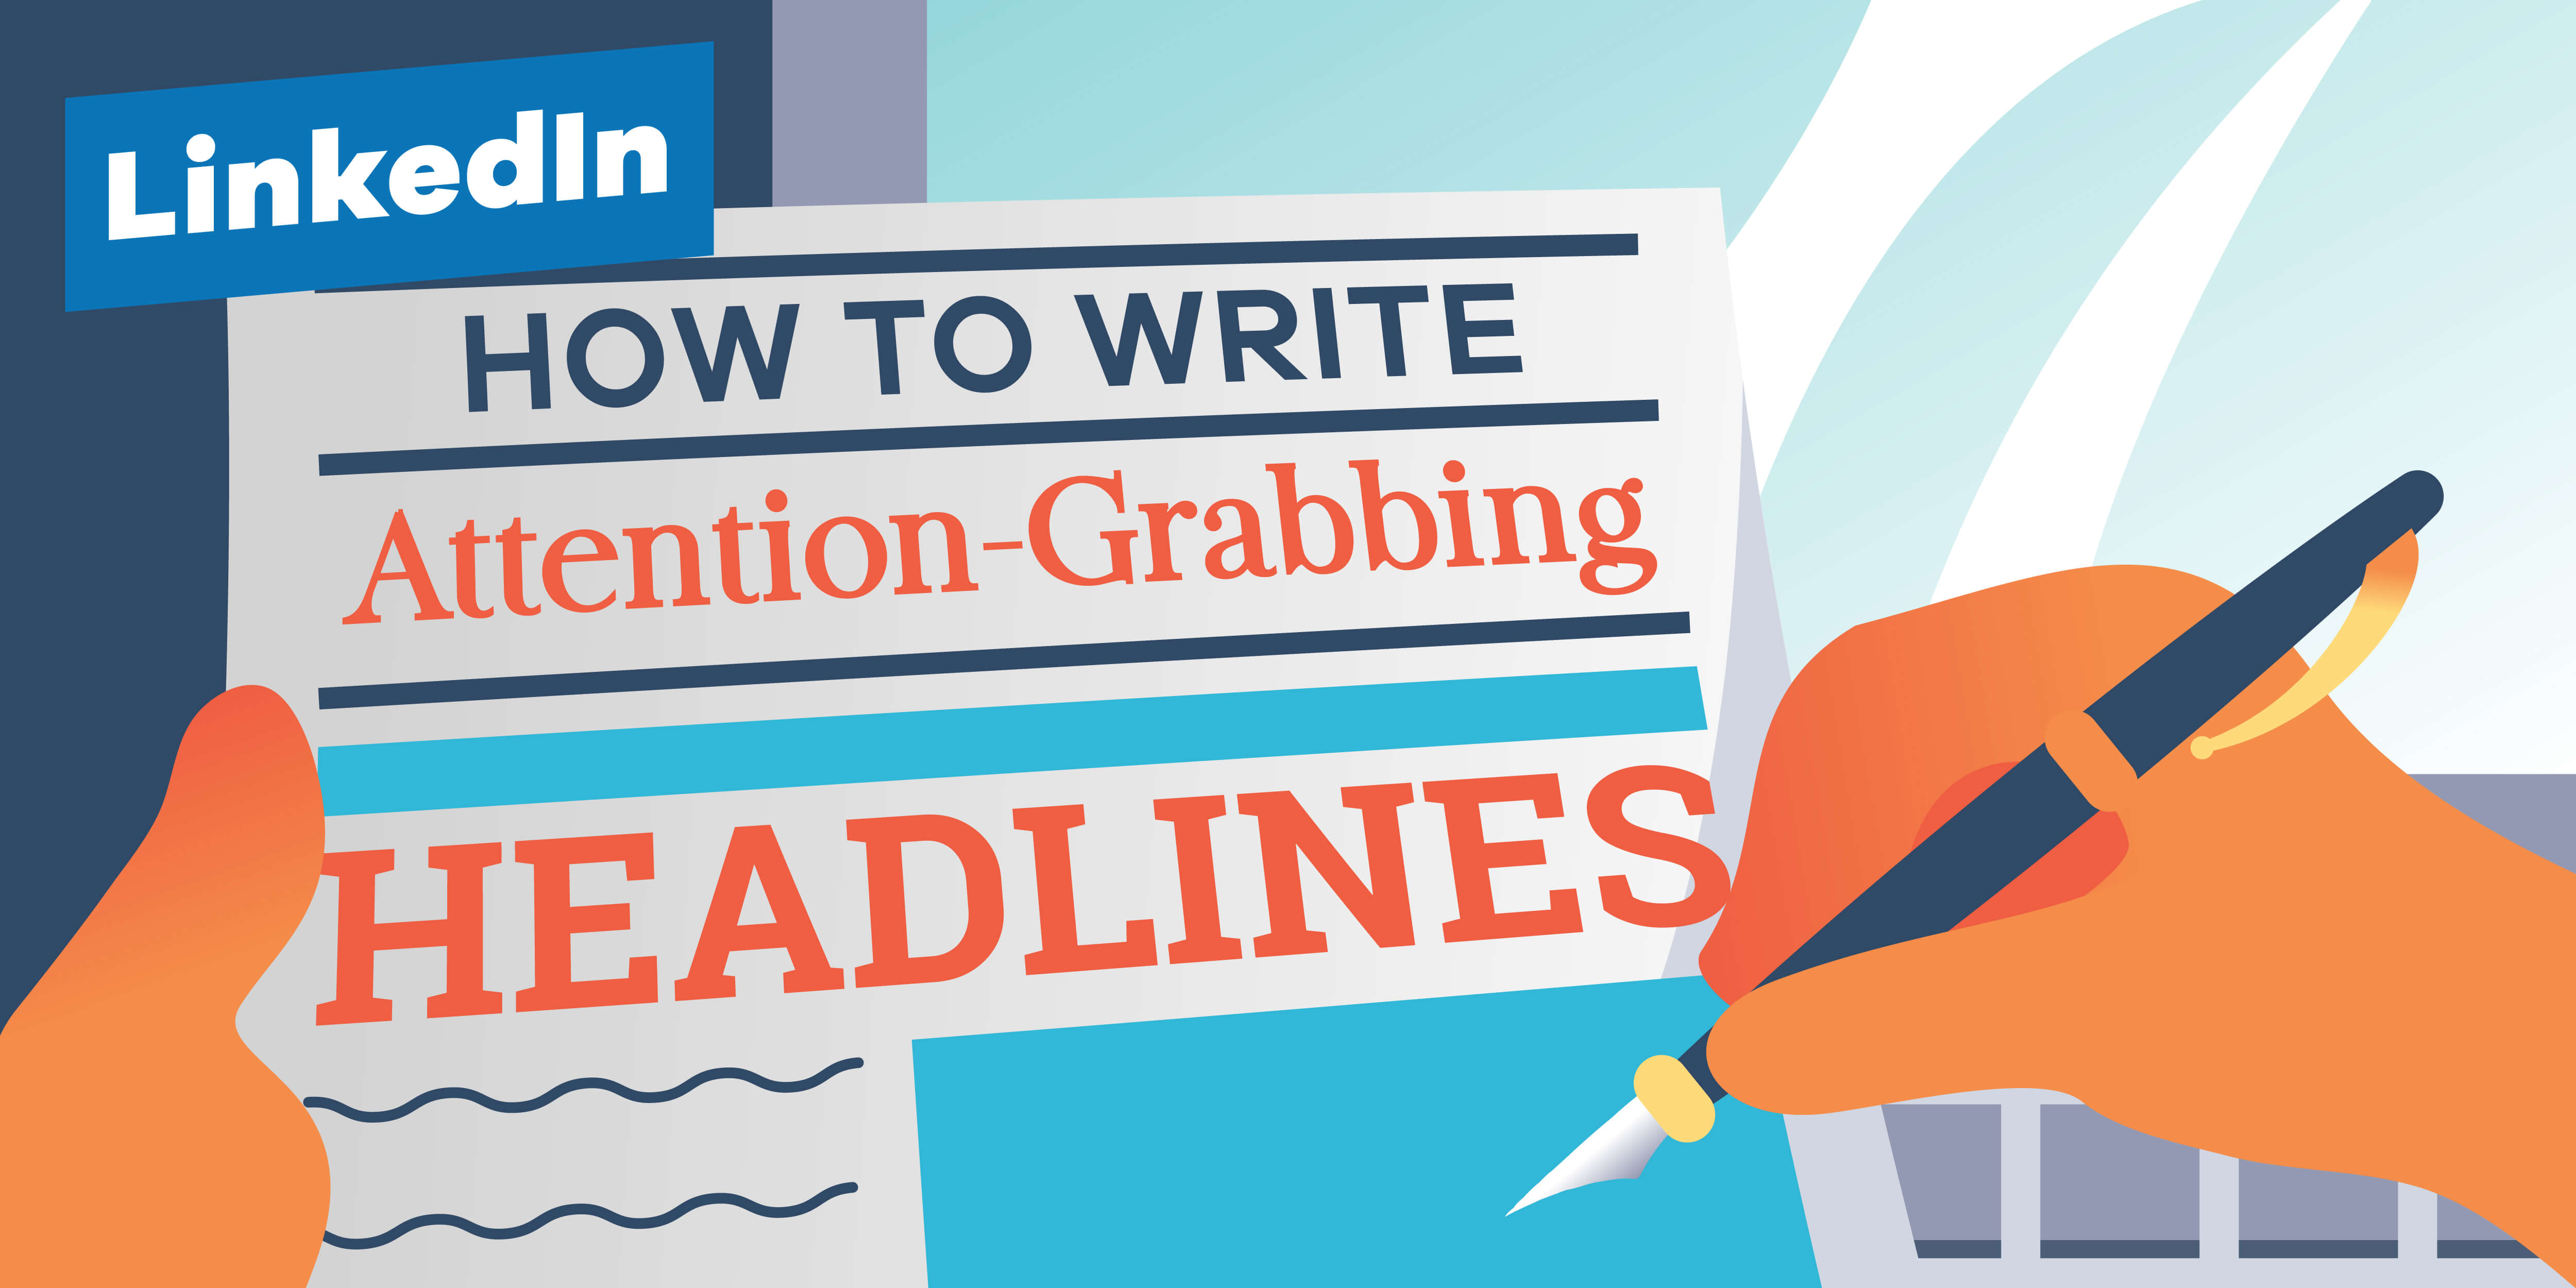 How-To-Write-Attention-Grabbing-LinkedIn-Headlines-01